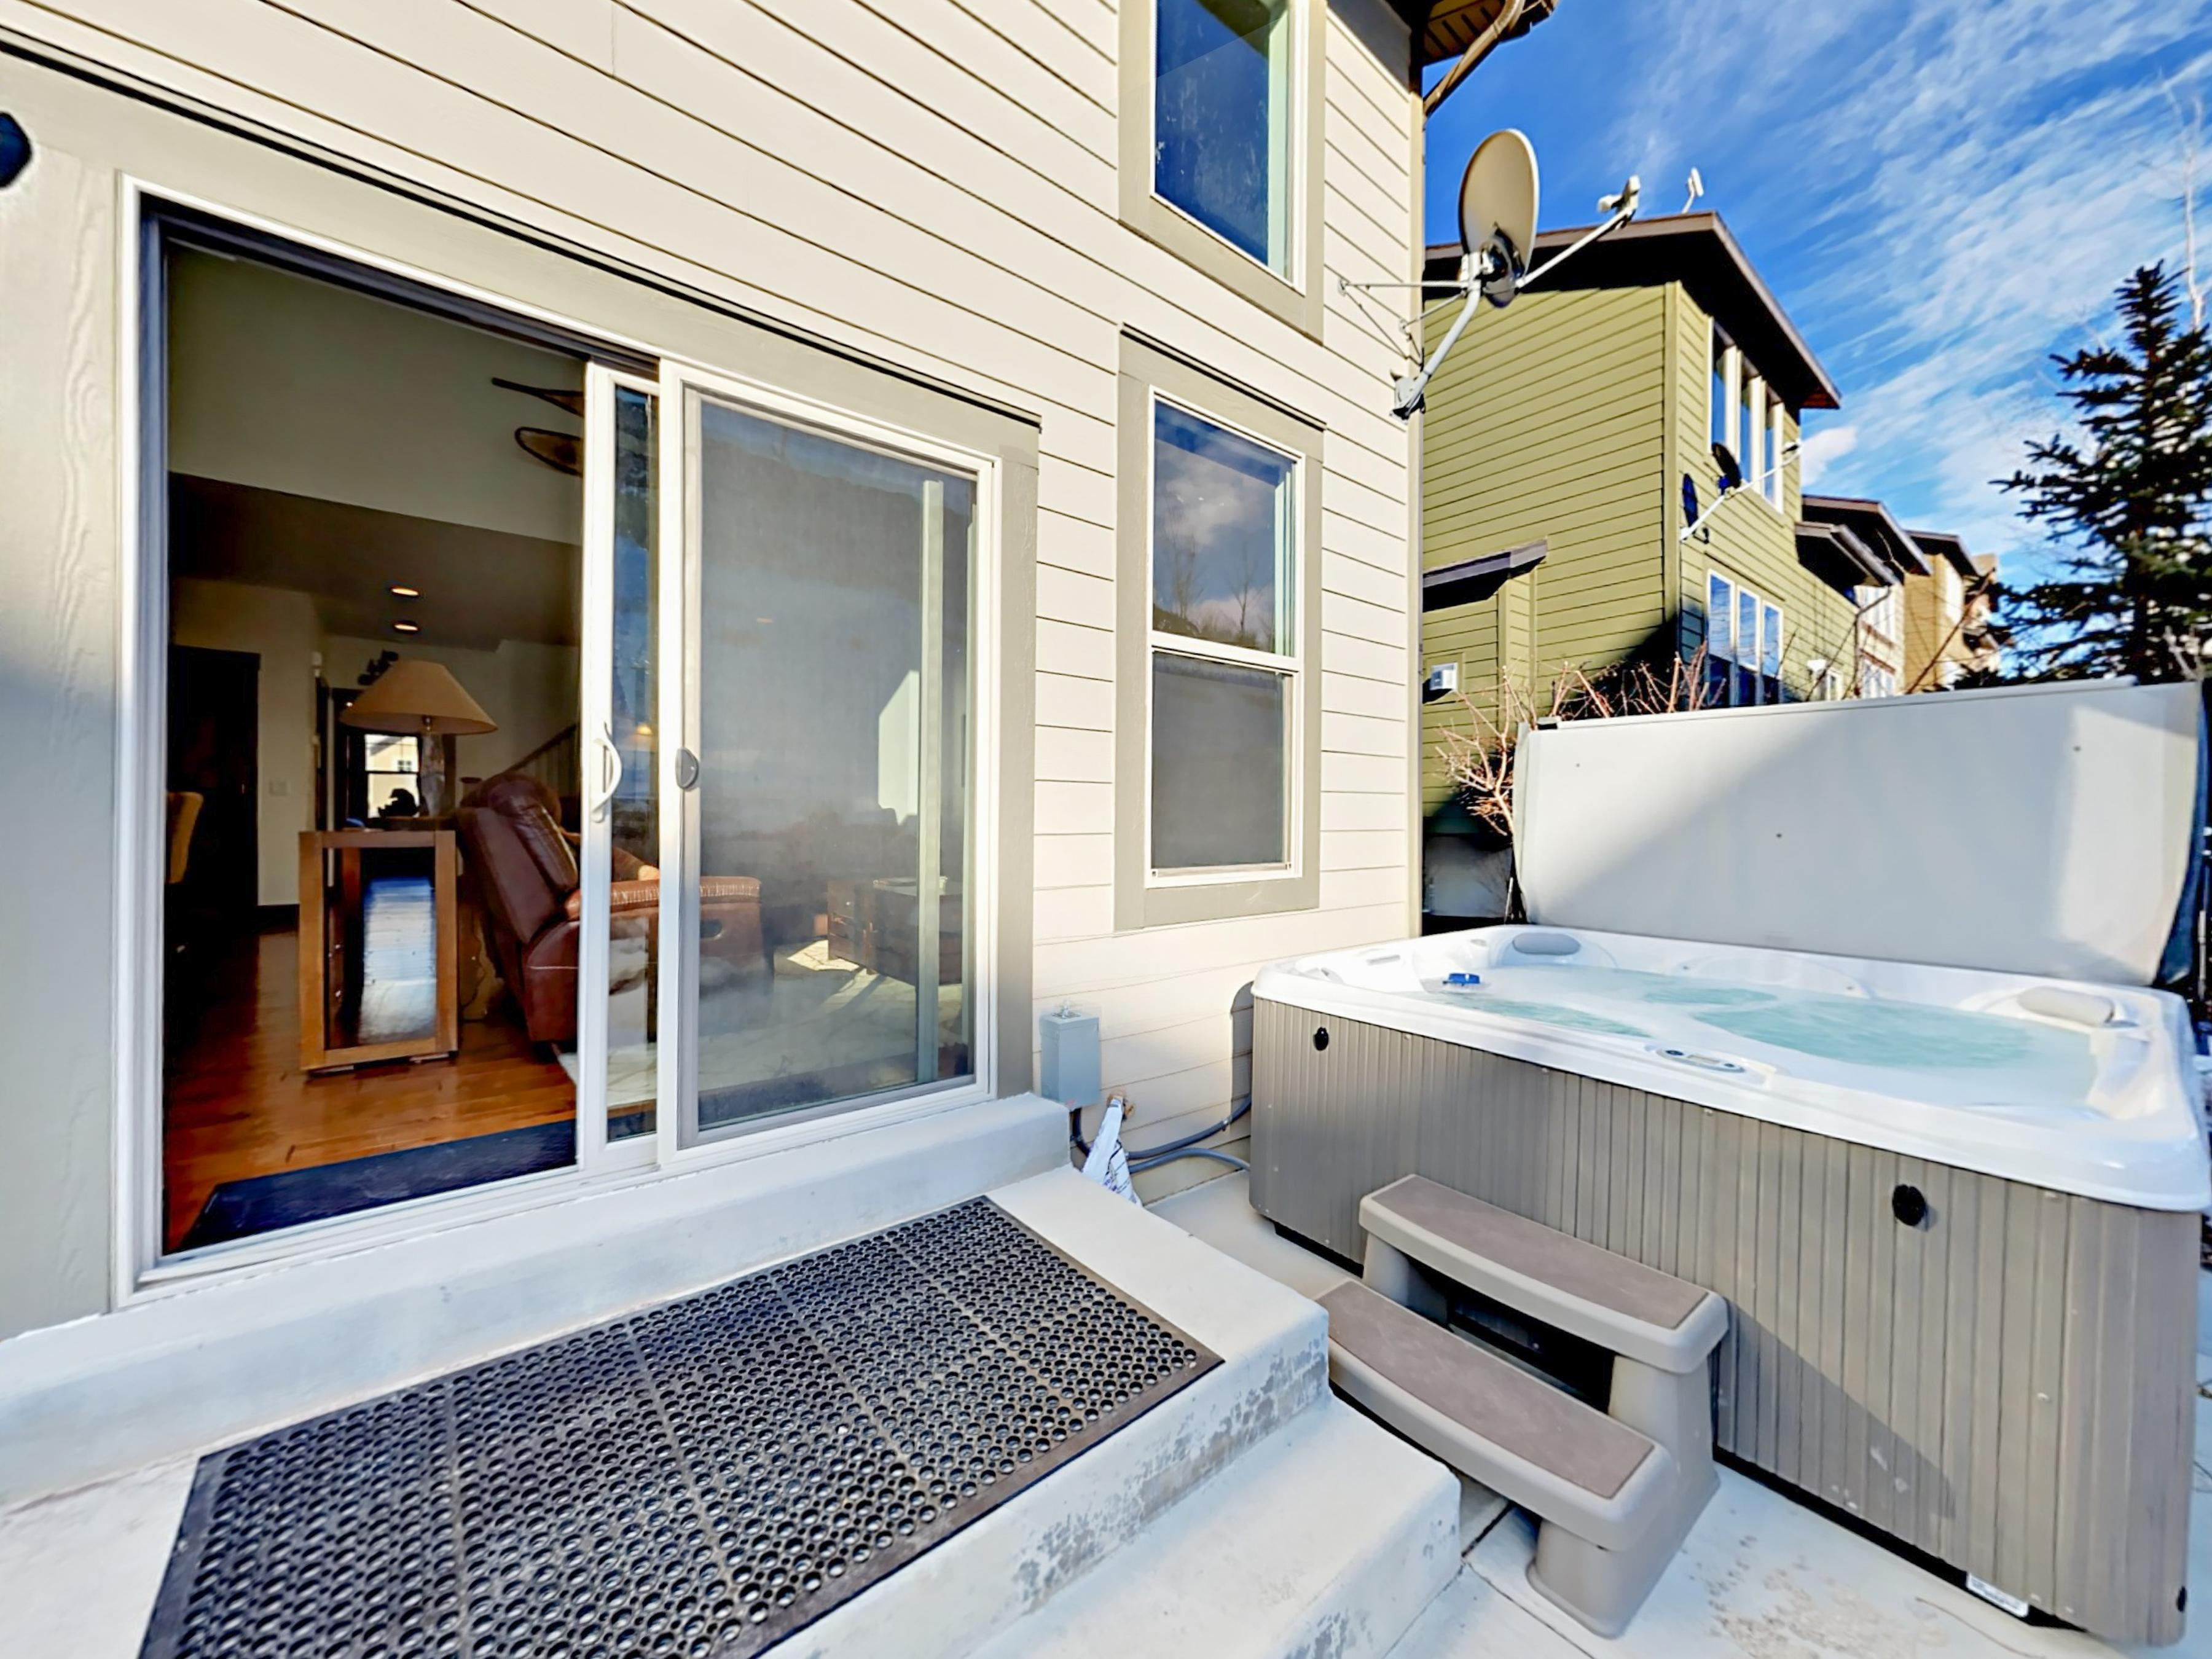 Your rental includes a private 6-person hot tub as well as access to a community pool (open in the summer).